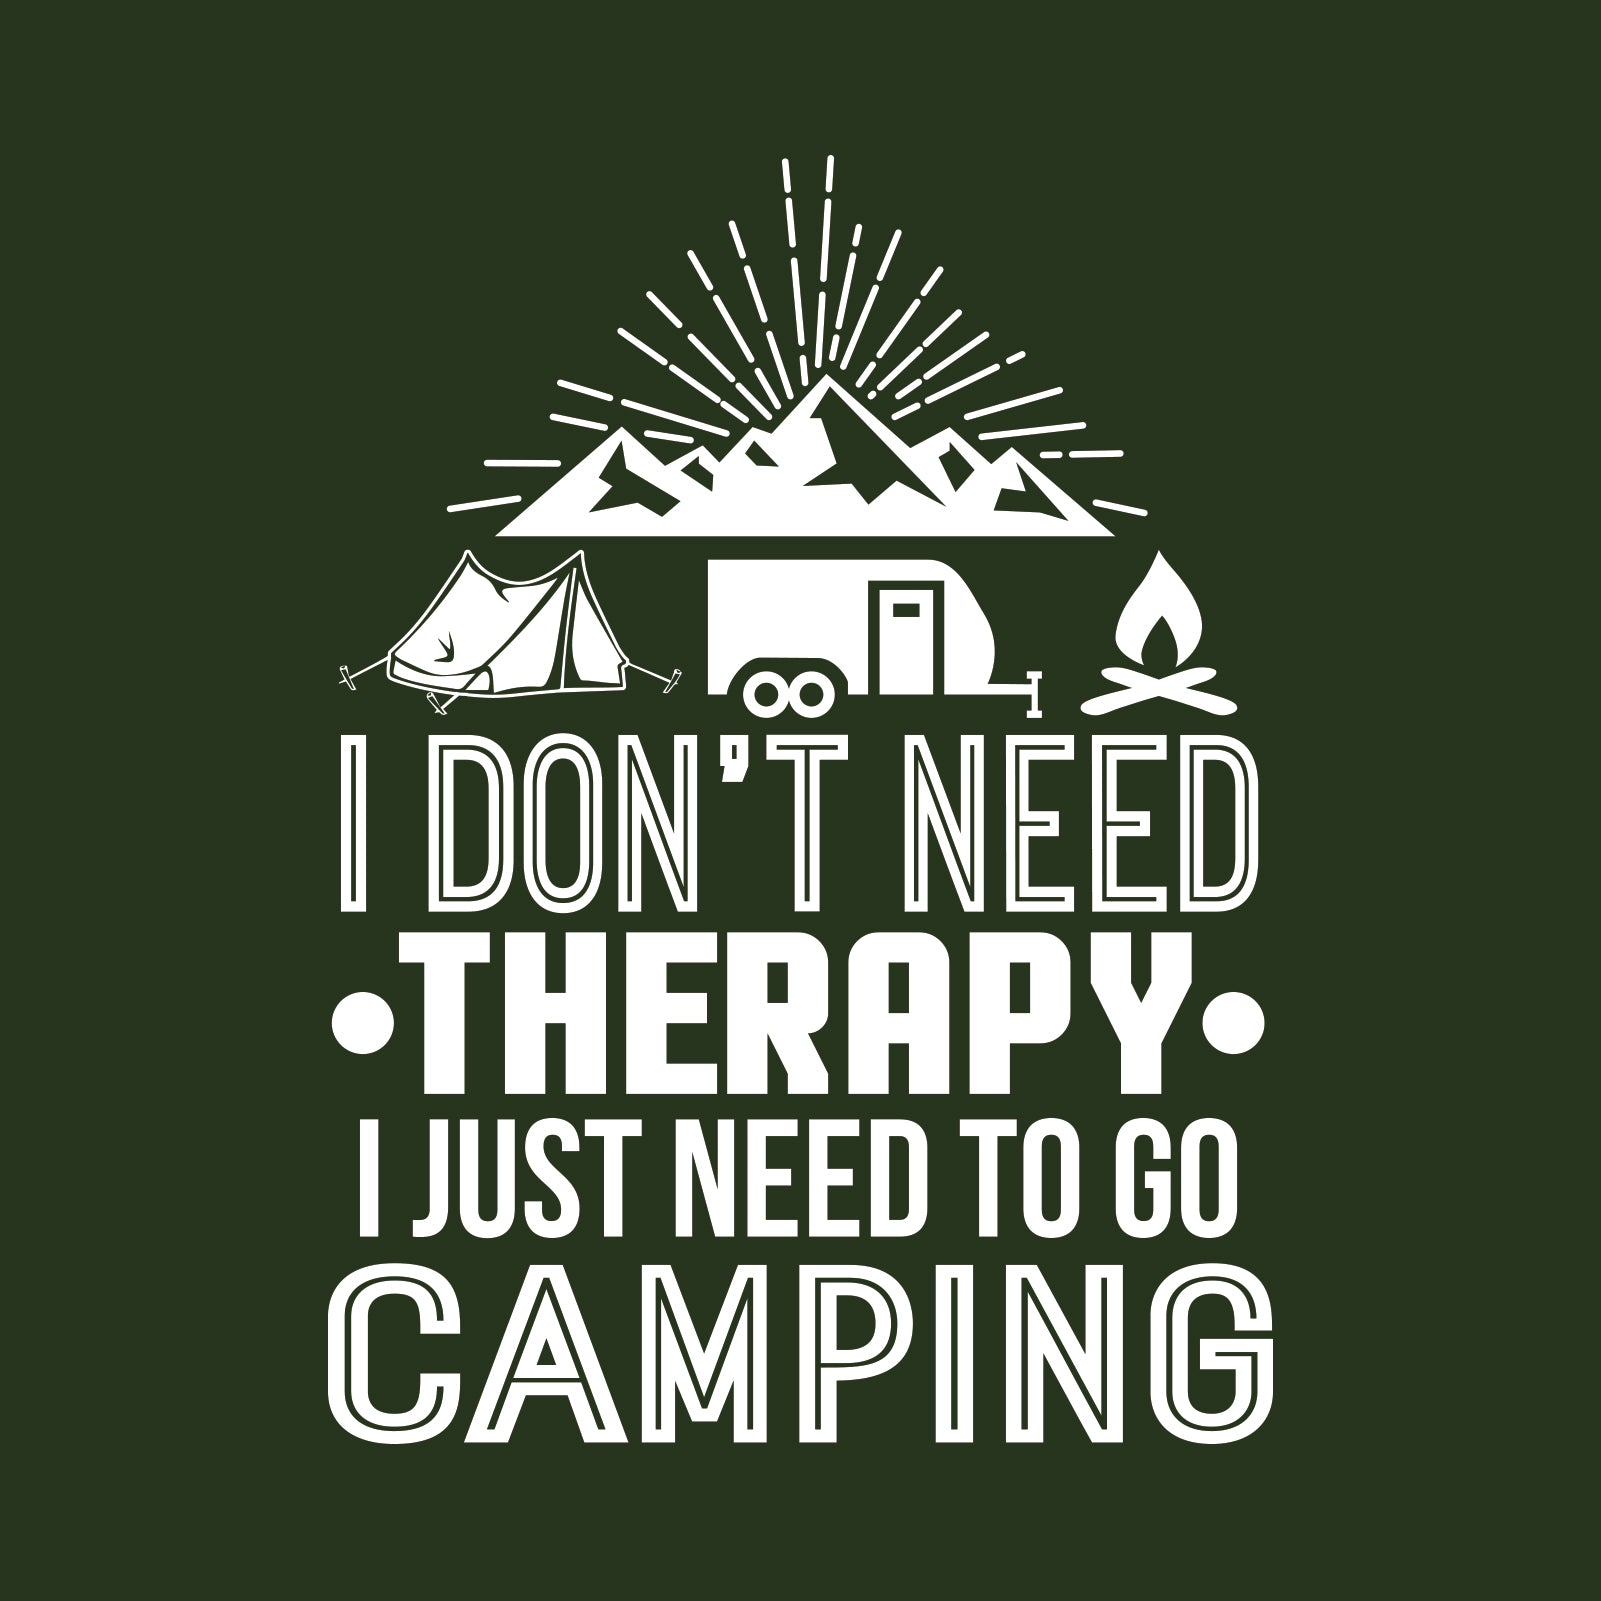 049b9a21 ... Don't Need Therapy I Just Need To Go Camping - Hiking, Outdoors, ...